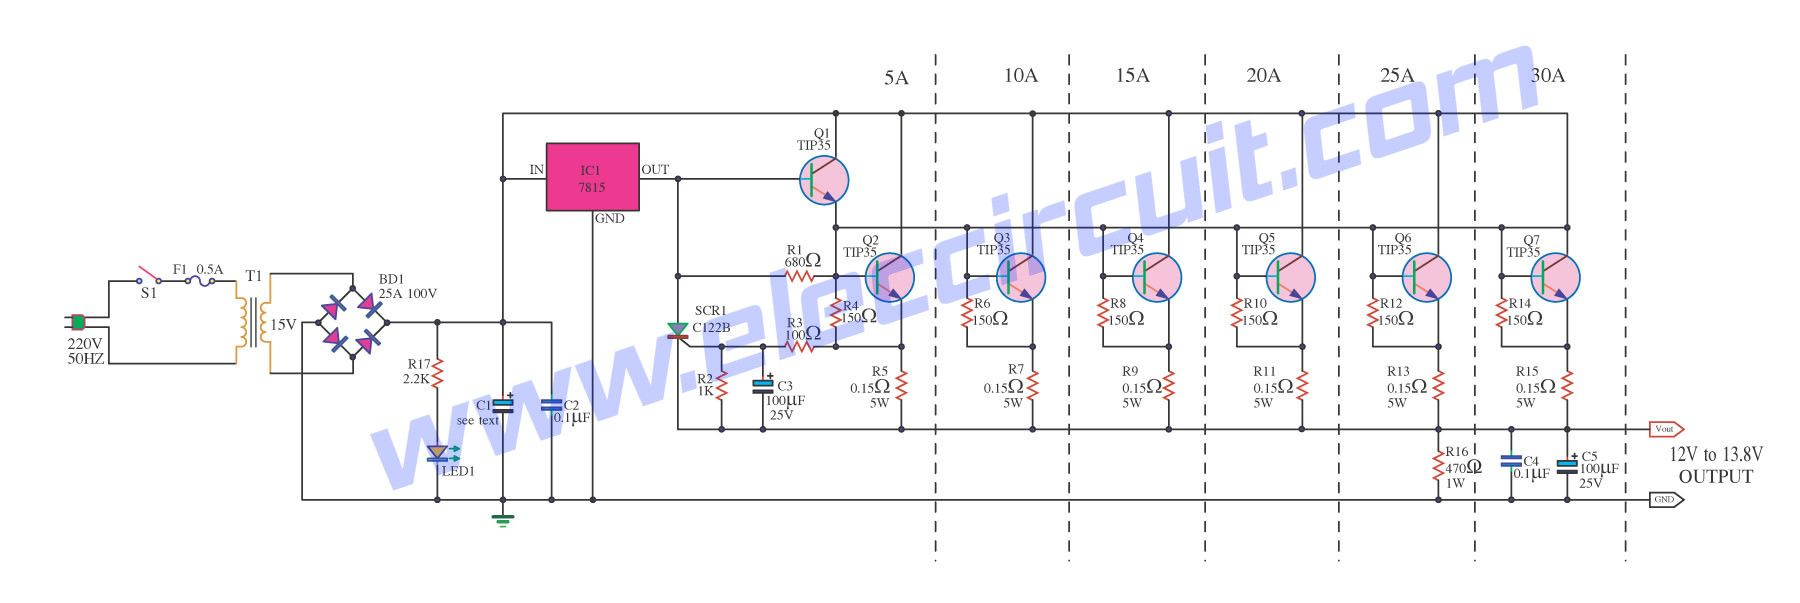 hight resolution of power supply circuit power out variables ham radio